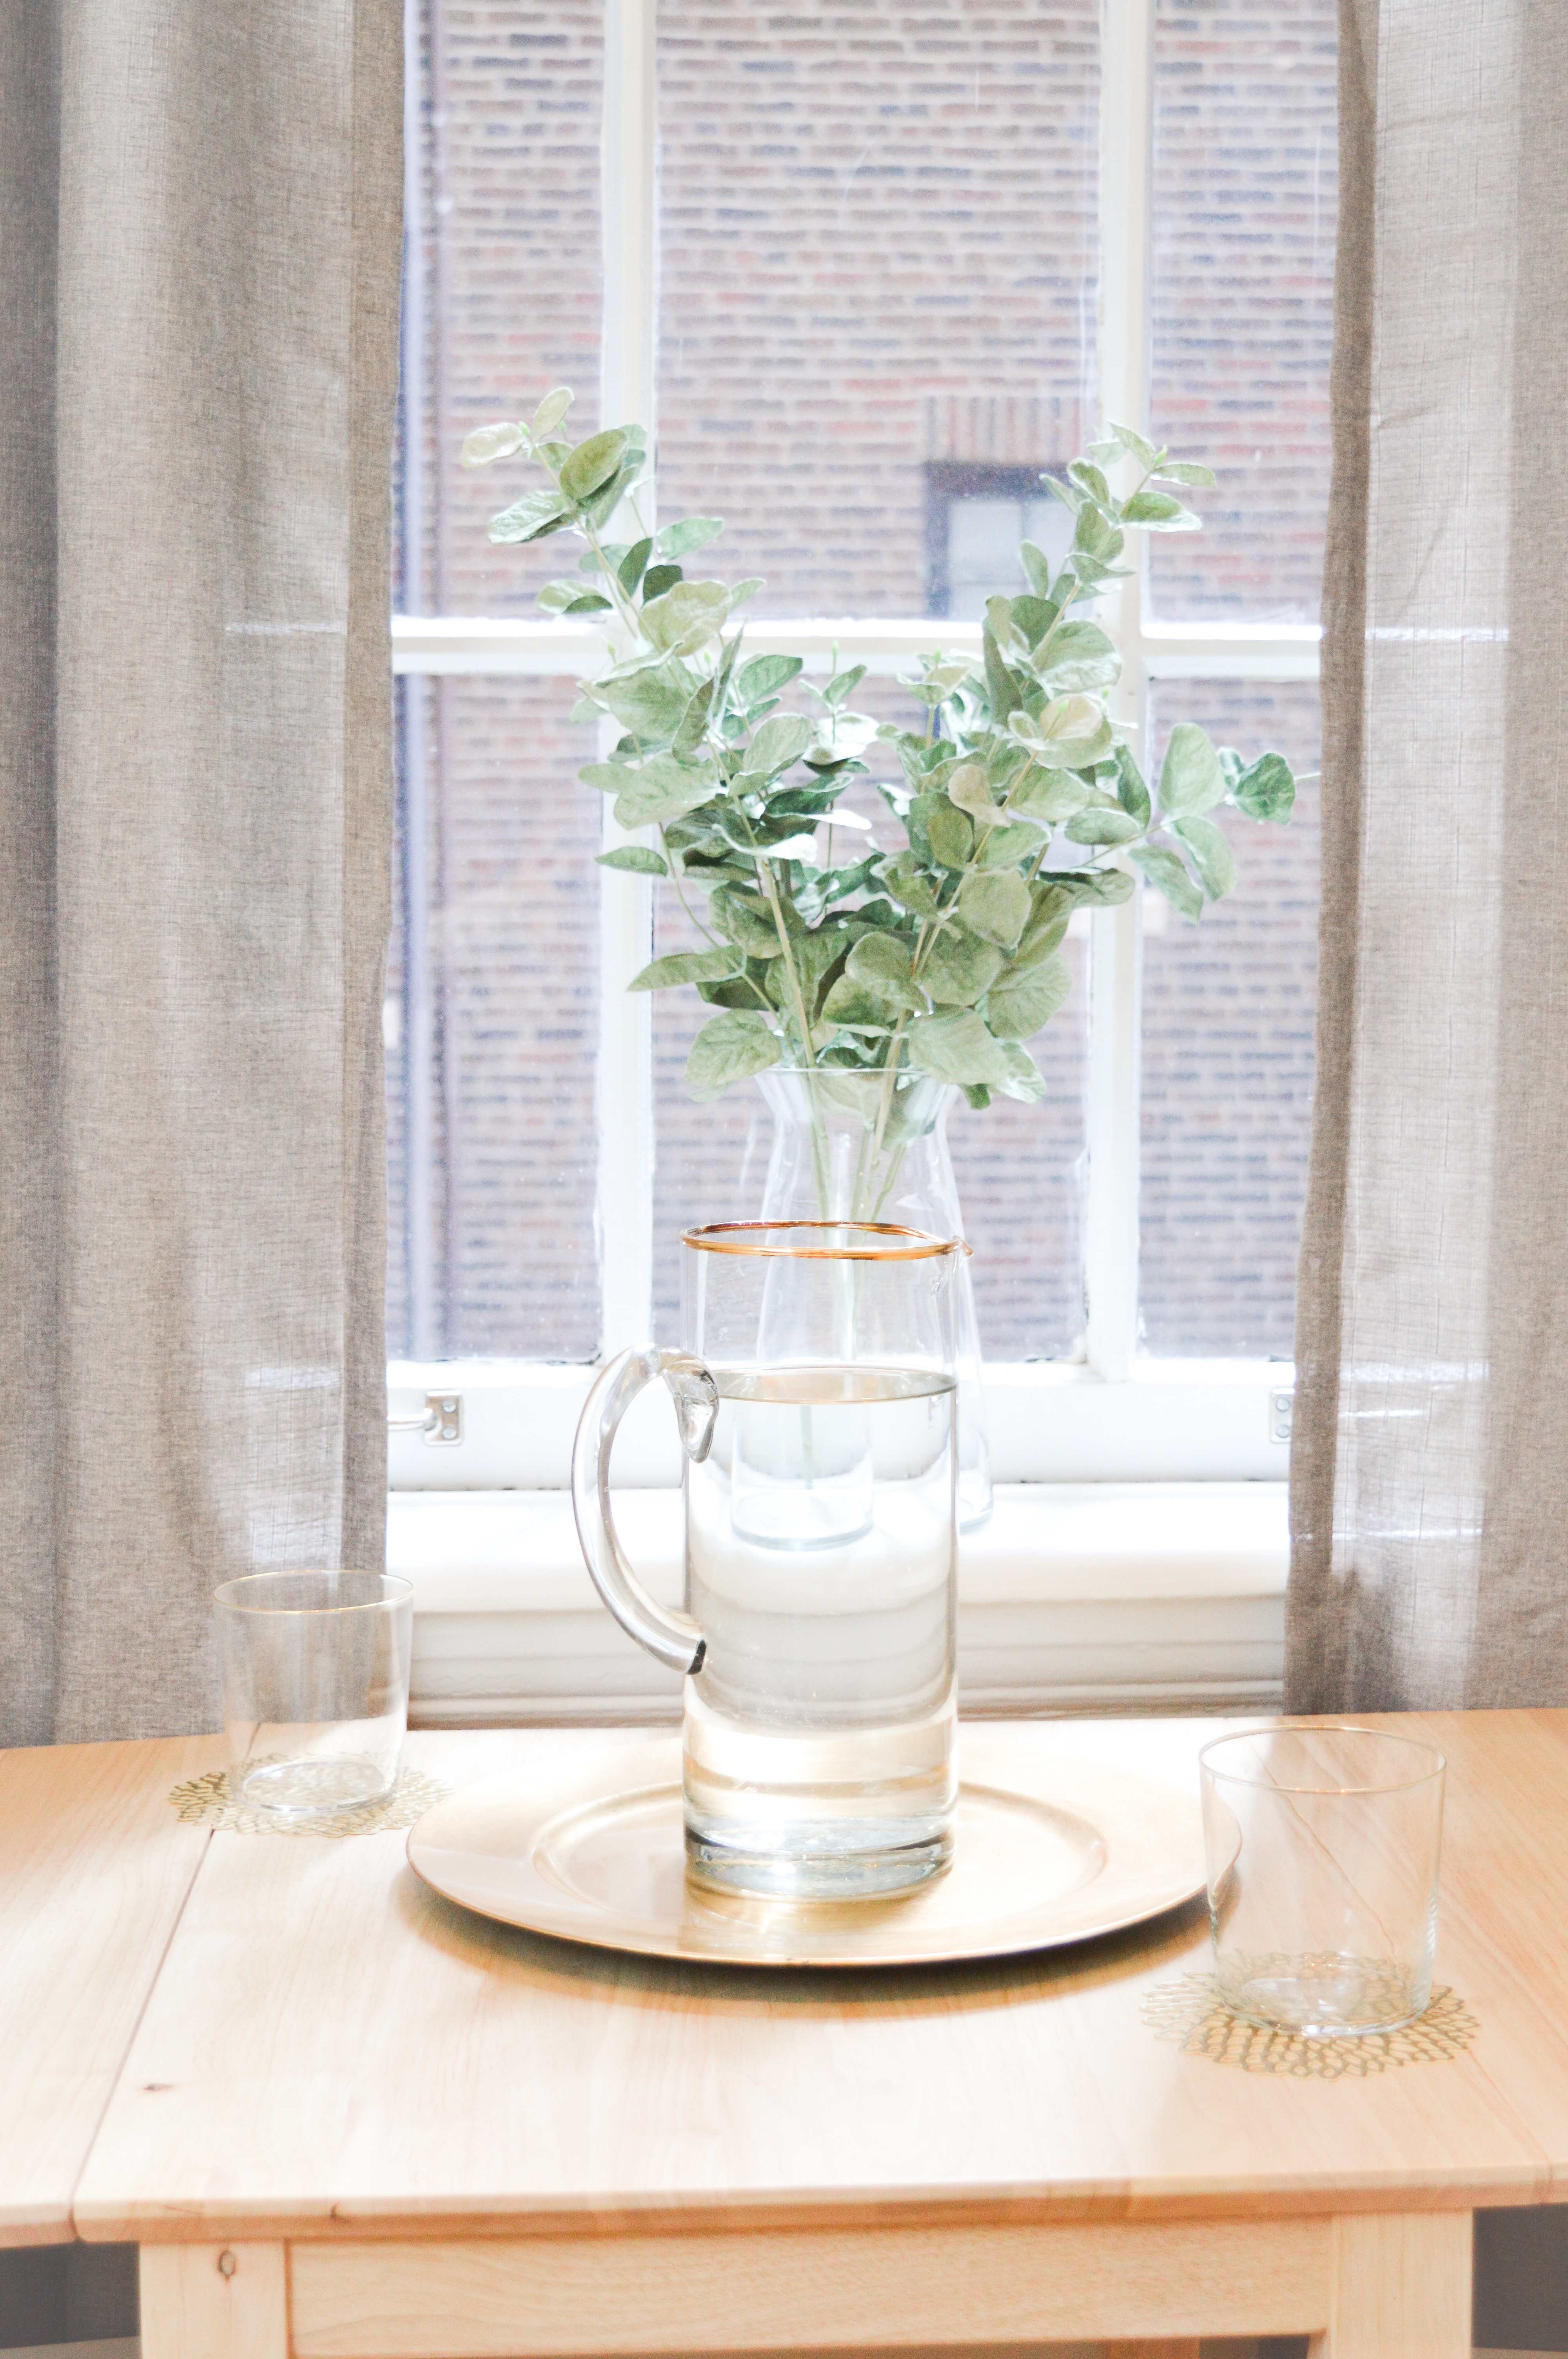 Easy Tabletop Decor for a First Apartment